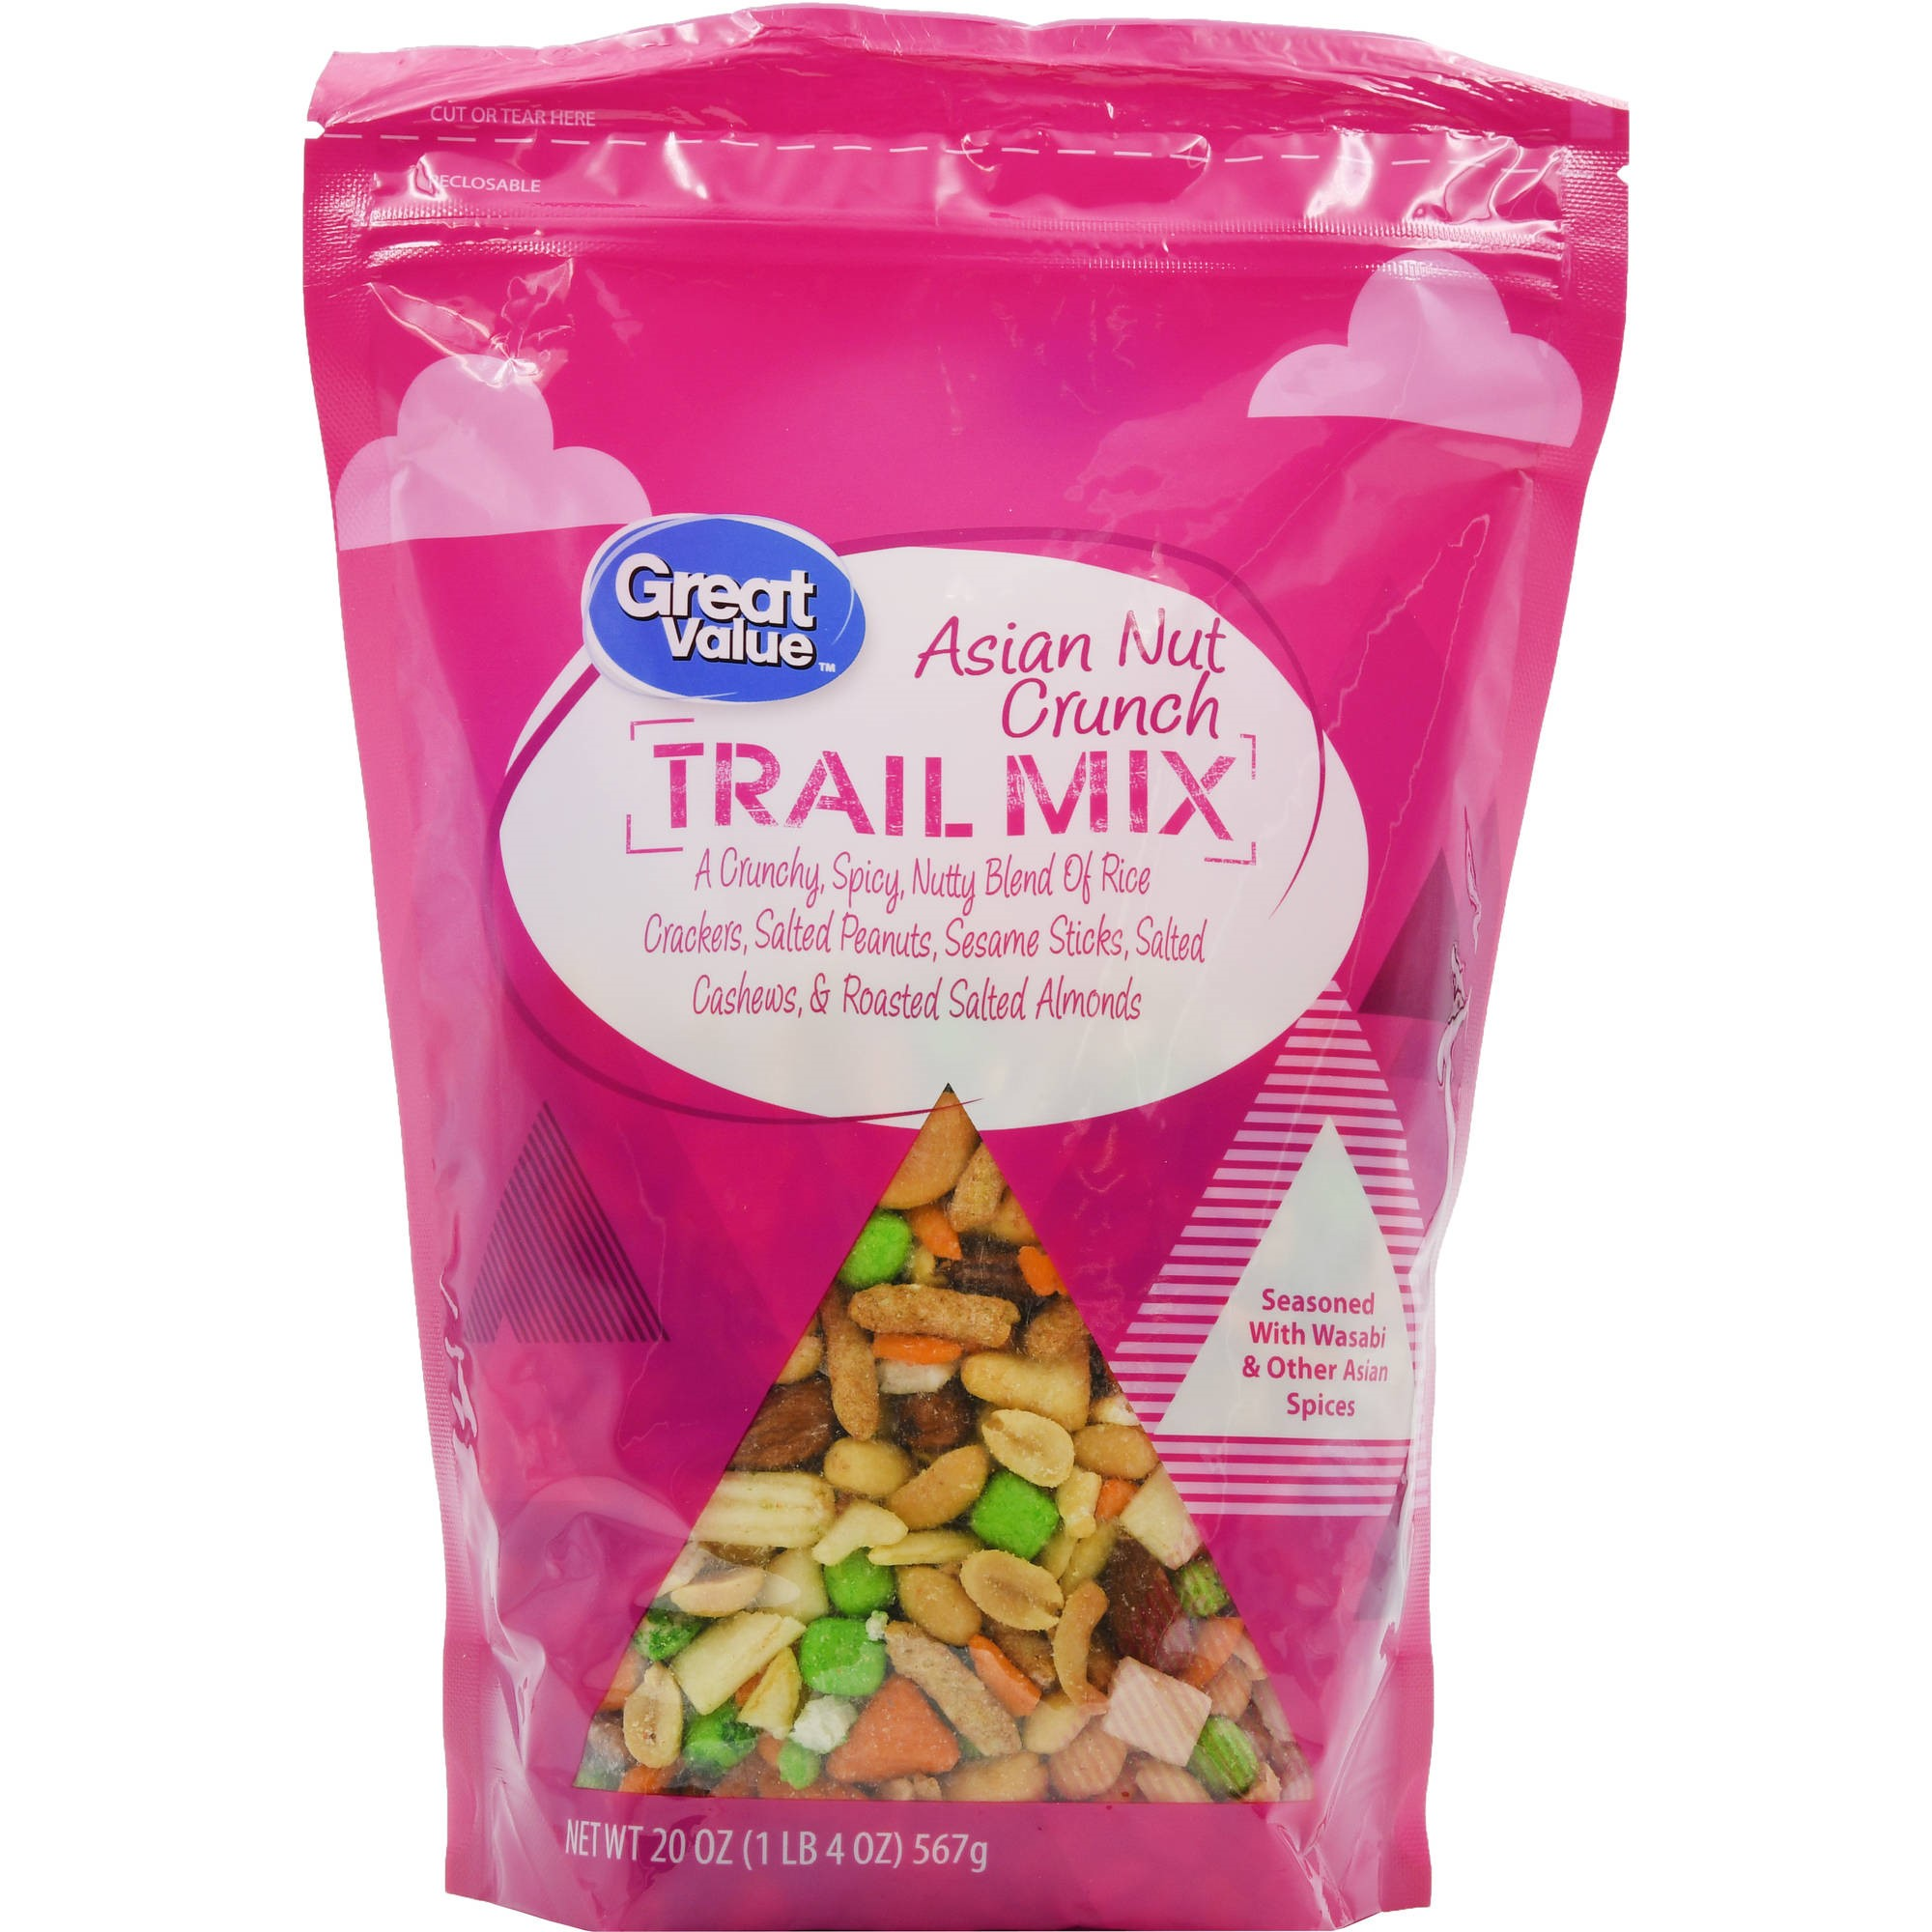 Great Value Asian Nut Crunch Trail Mix, 20 Oz.